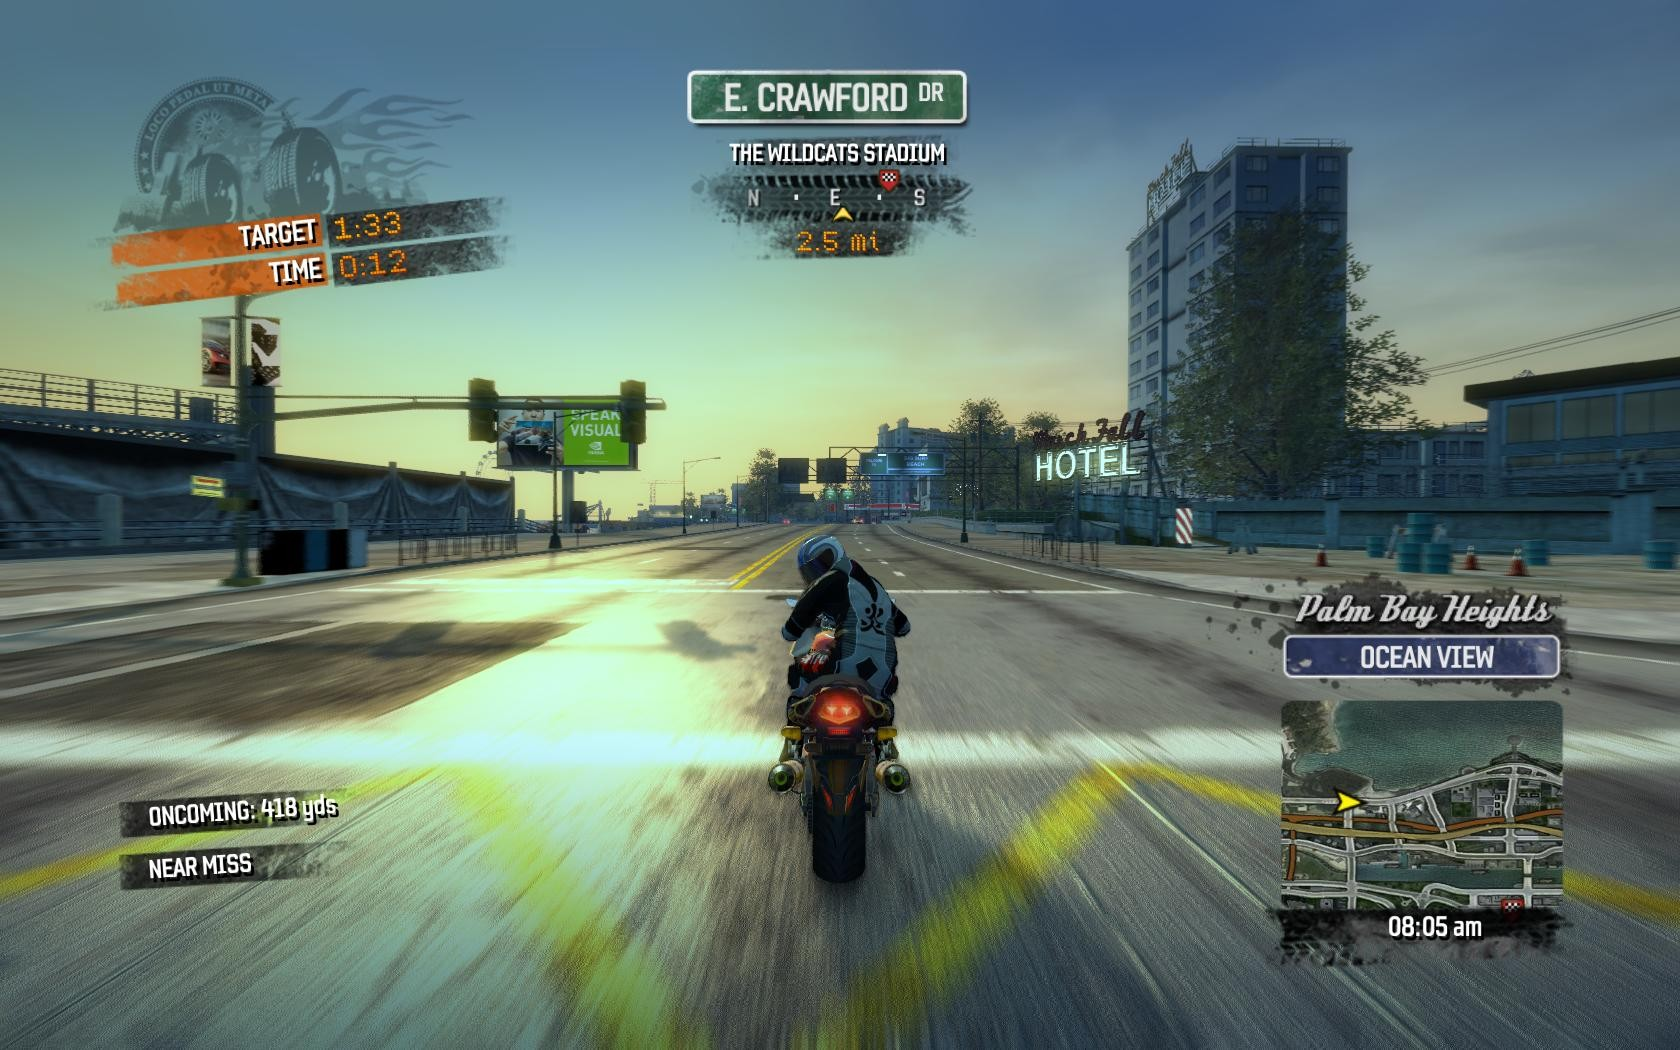 Burnout Paradise Pc Saved Game All Cars